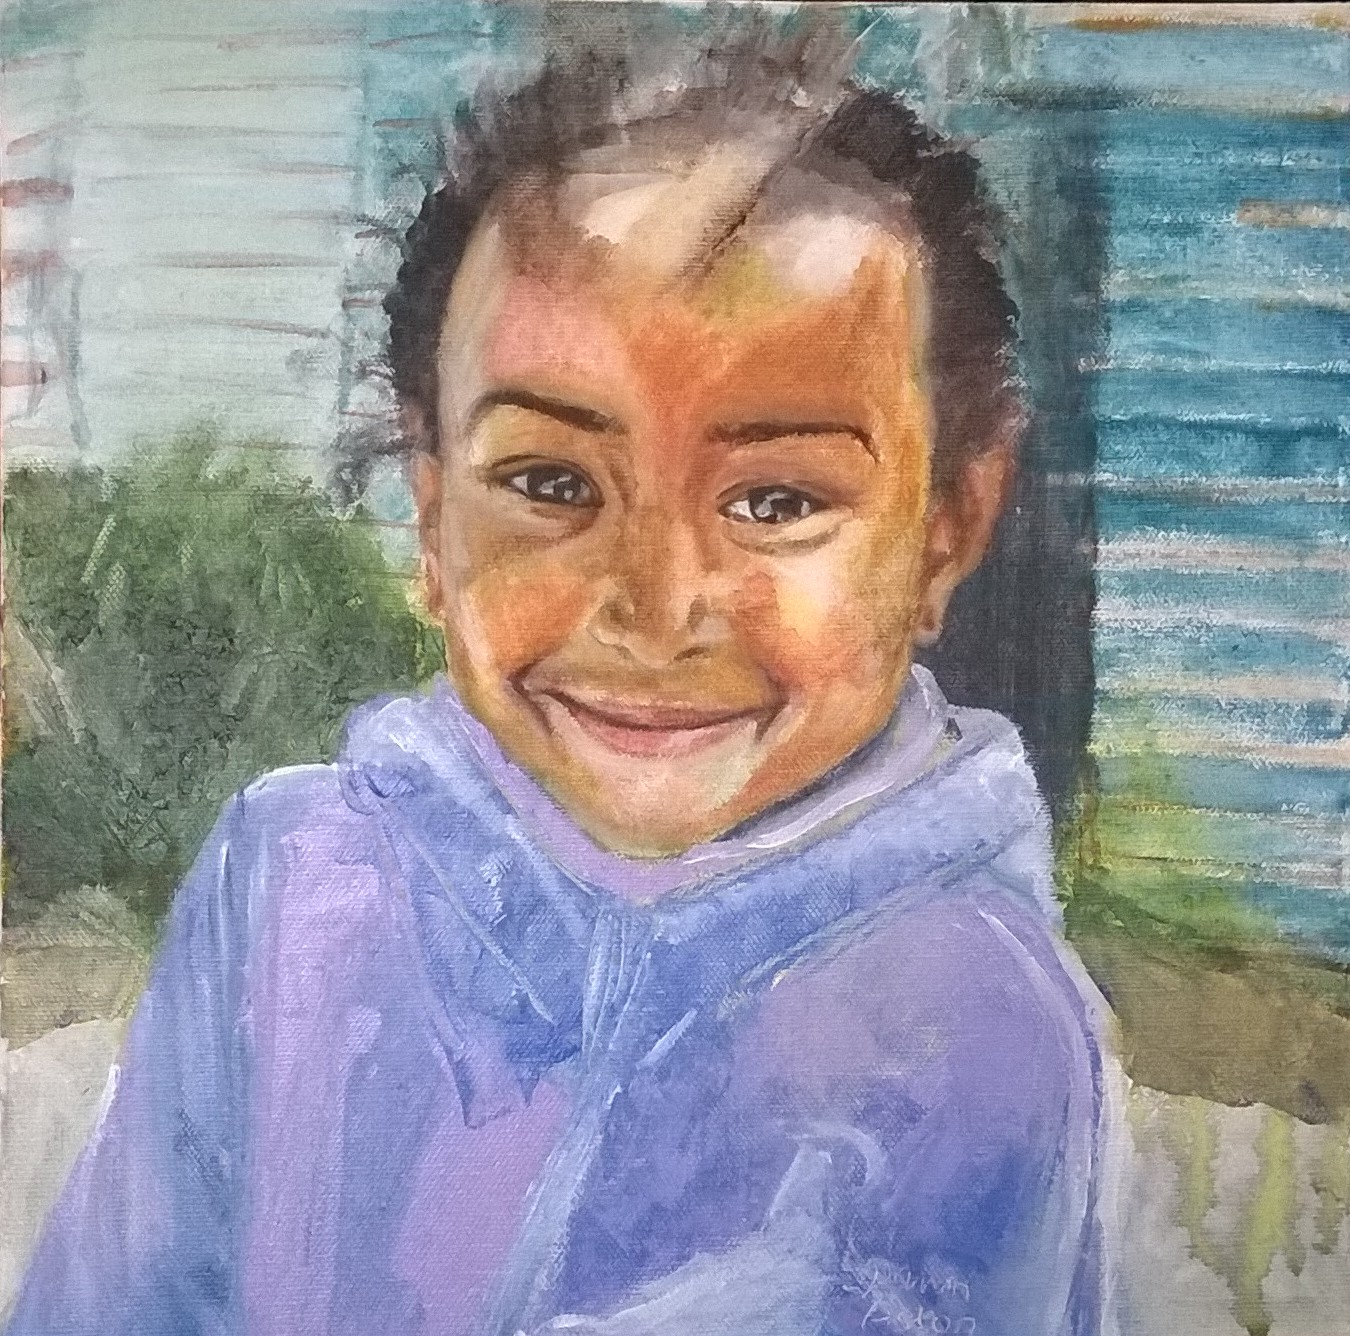 Portrait of child from Township.jpg